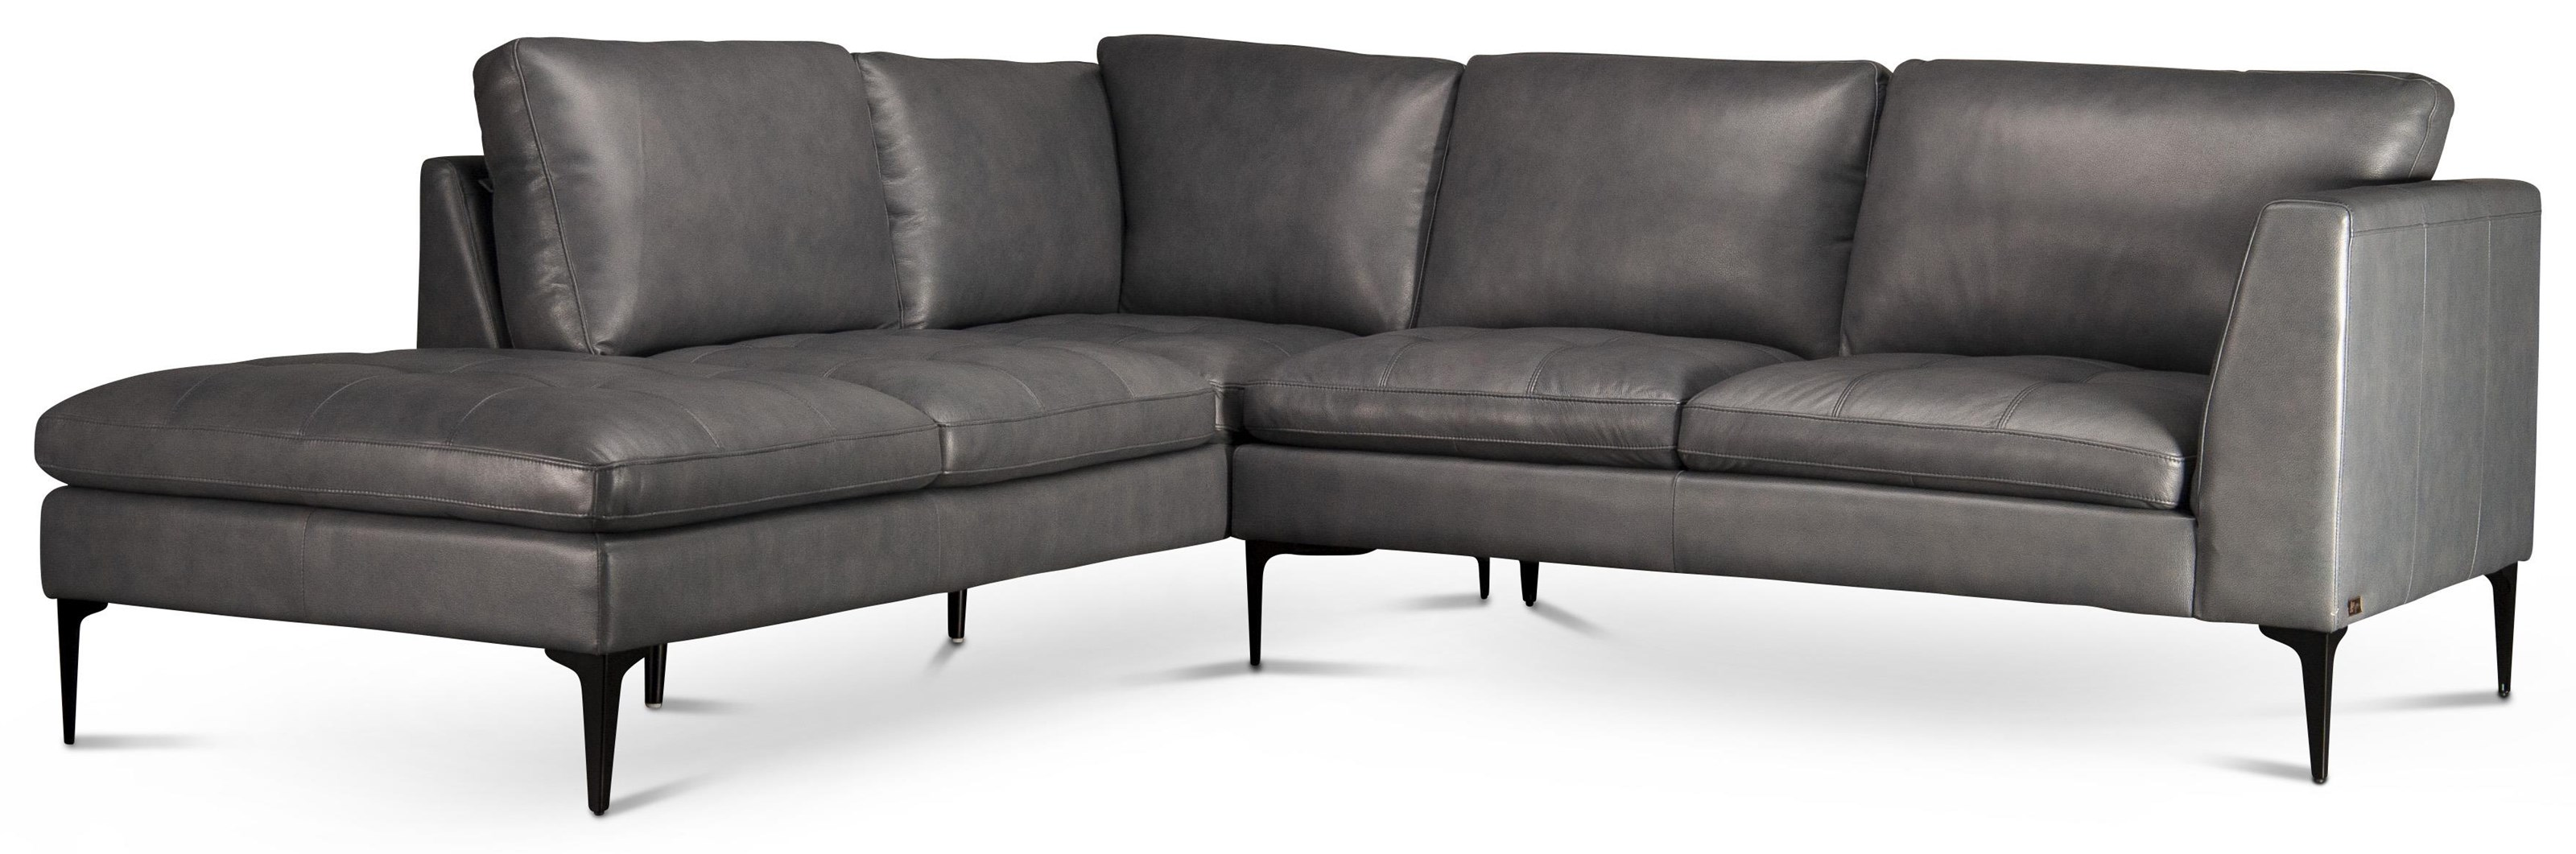 Kael Kael Top Grain Leather Sectional by Abbyson at Morris Home